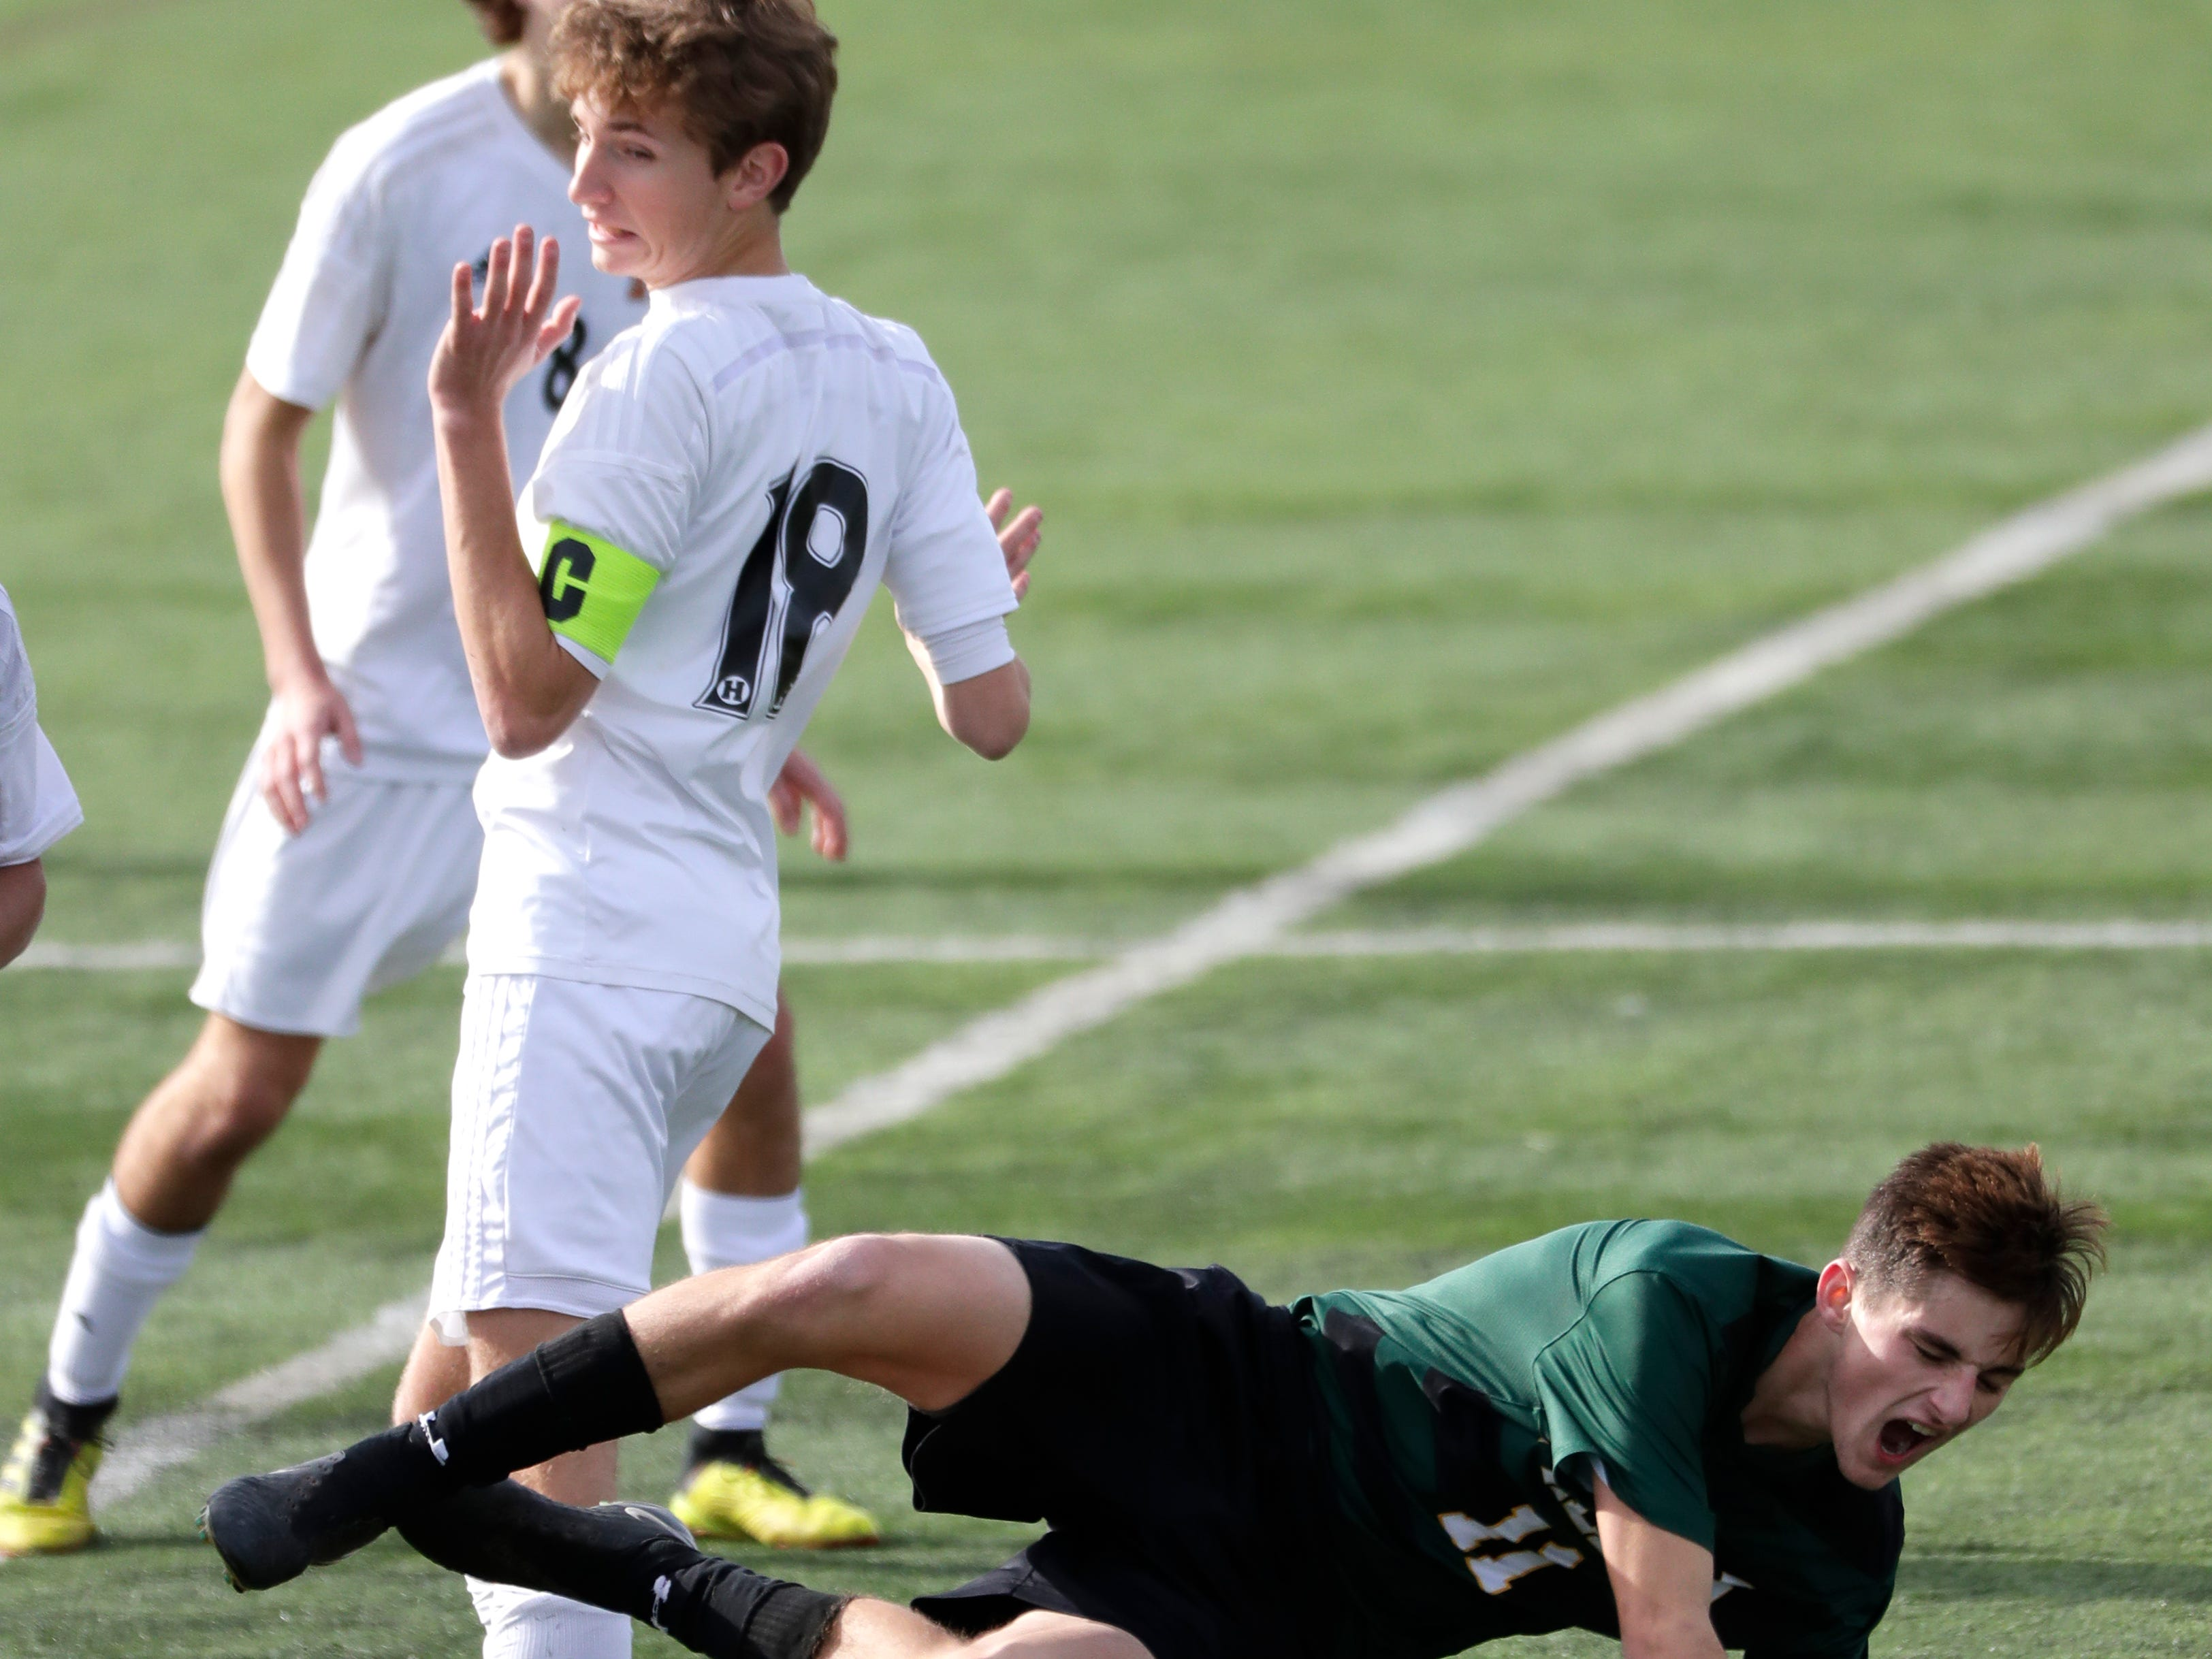 Green Bay Preble High School's Henry Starks (11) is tripped up by Hamilton High School's Caden Etzel (18) during their WIAA Division 1 state semifinal boys soccer game Friday, November 2, 2018, at Uihlein Soccer Park in Milwaukee, Wis.